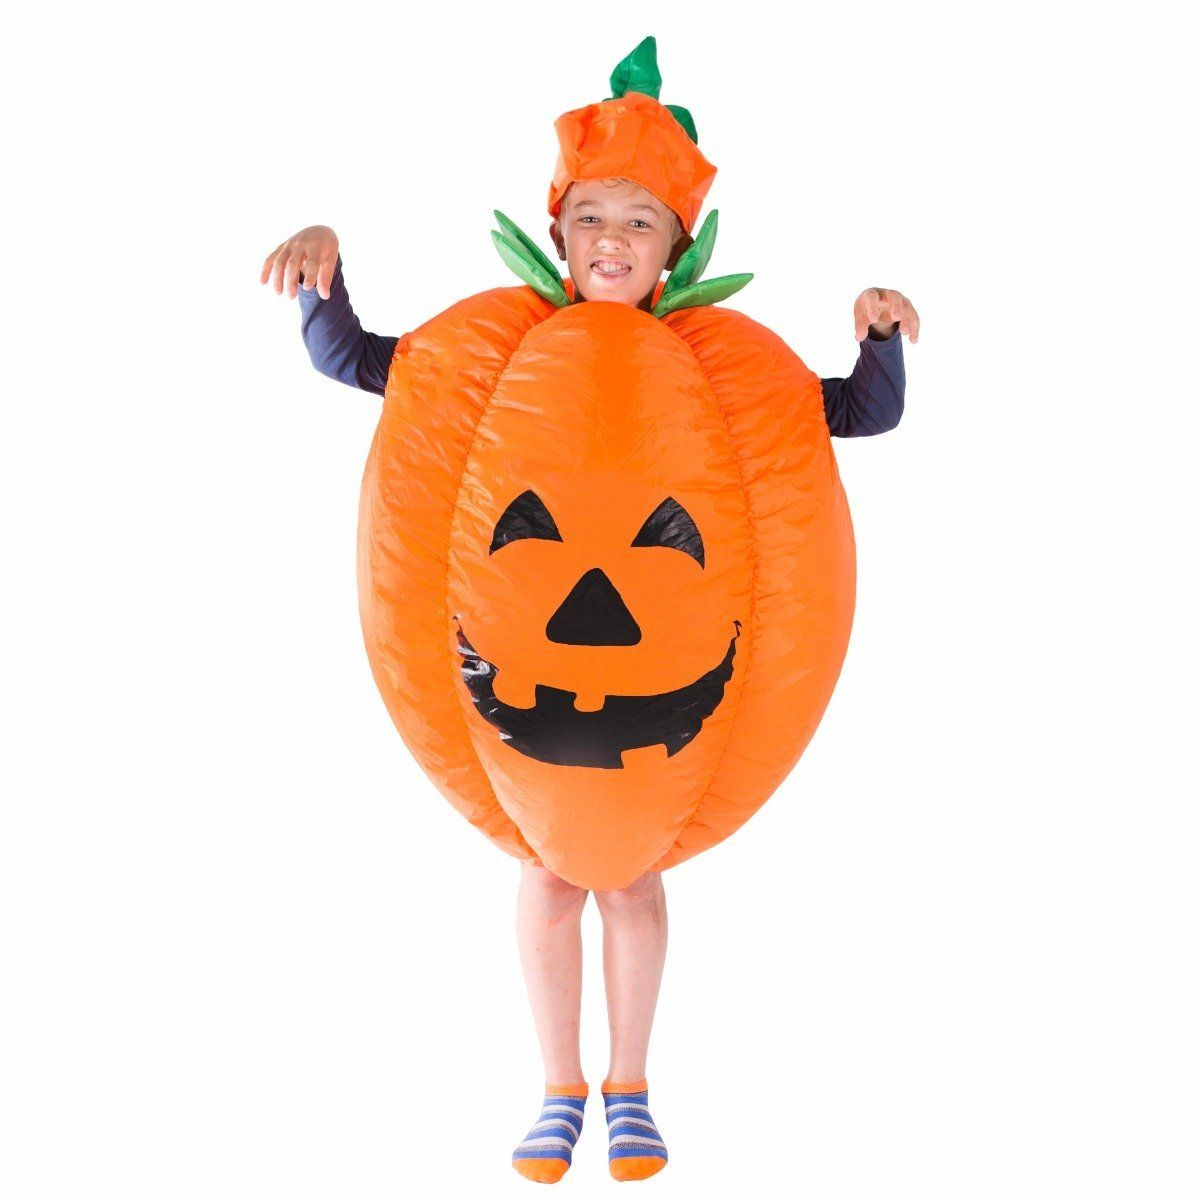 Fancy Dress - Kids Inflatable Pumpkin Costume